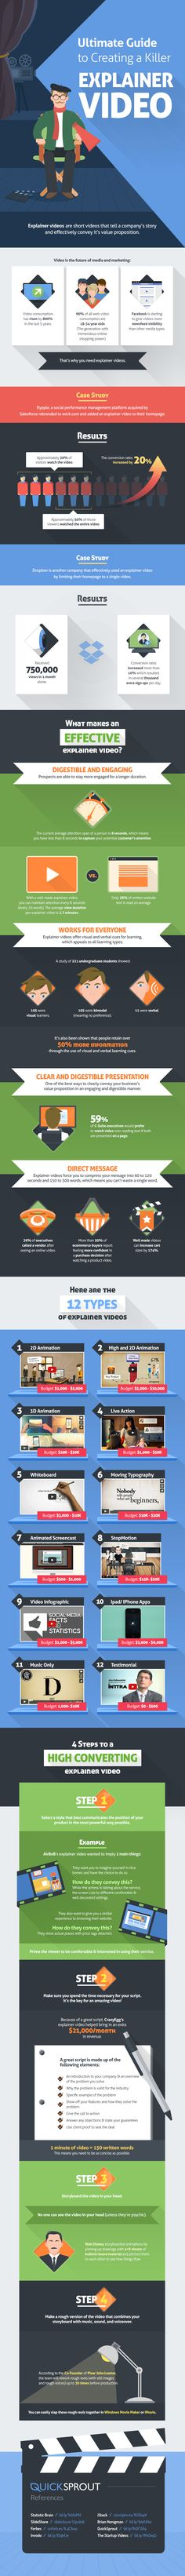 The Ultimate Guide to Creating a Killer Explainer Video - infographic